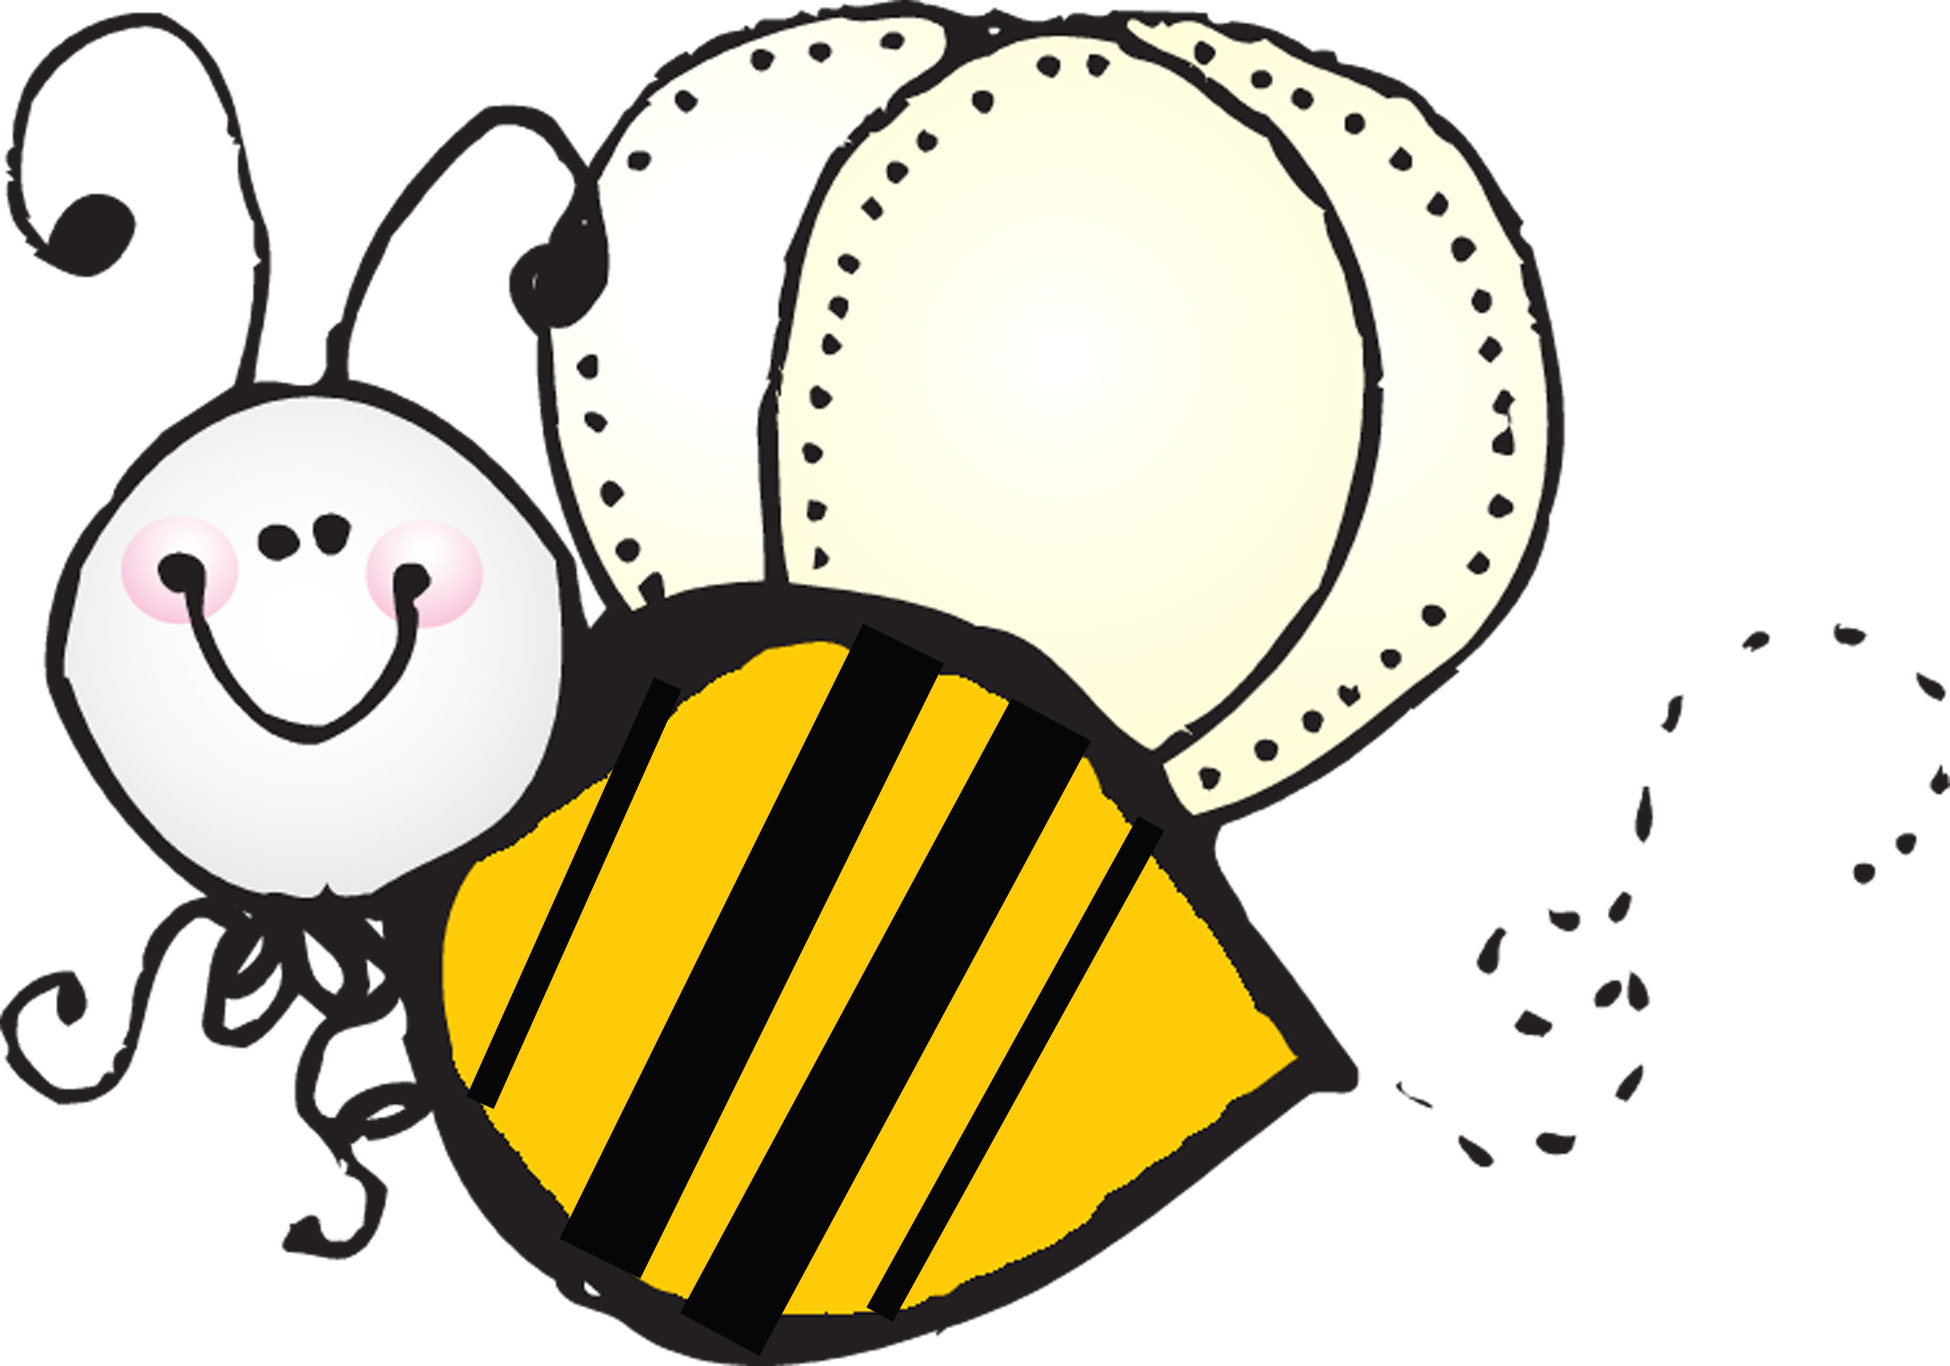 1950x1366 Cute Baby And Mom Bumblebee Black White Clipart